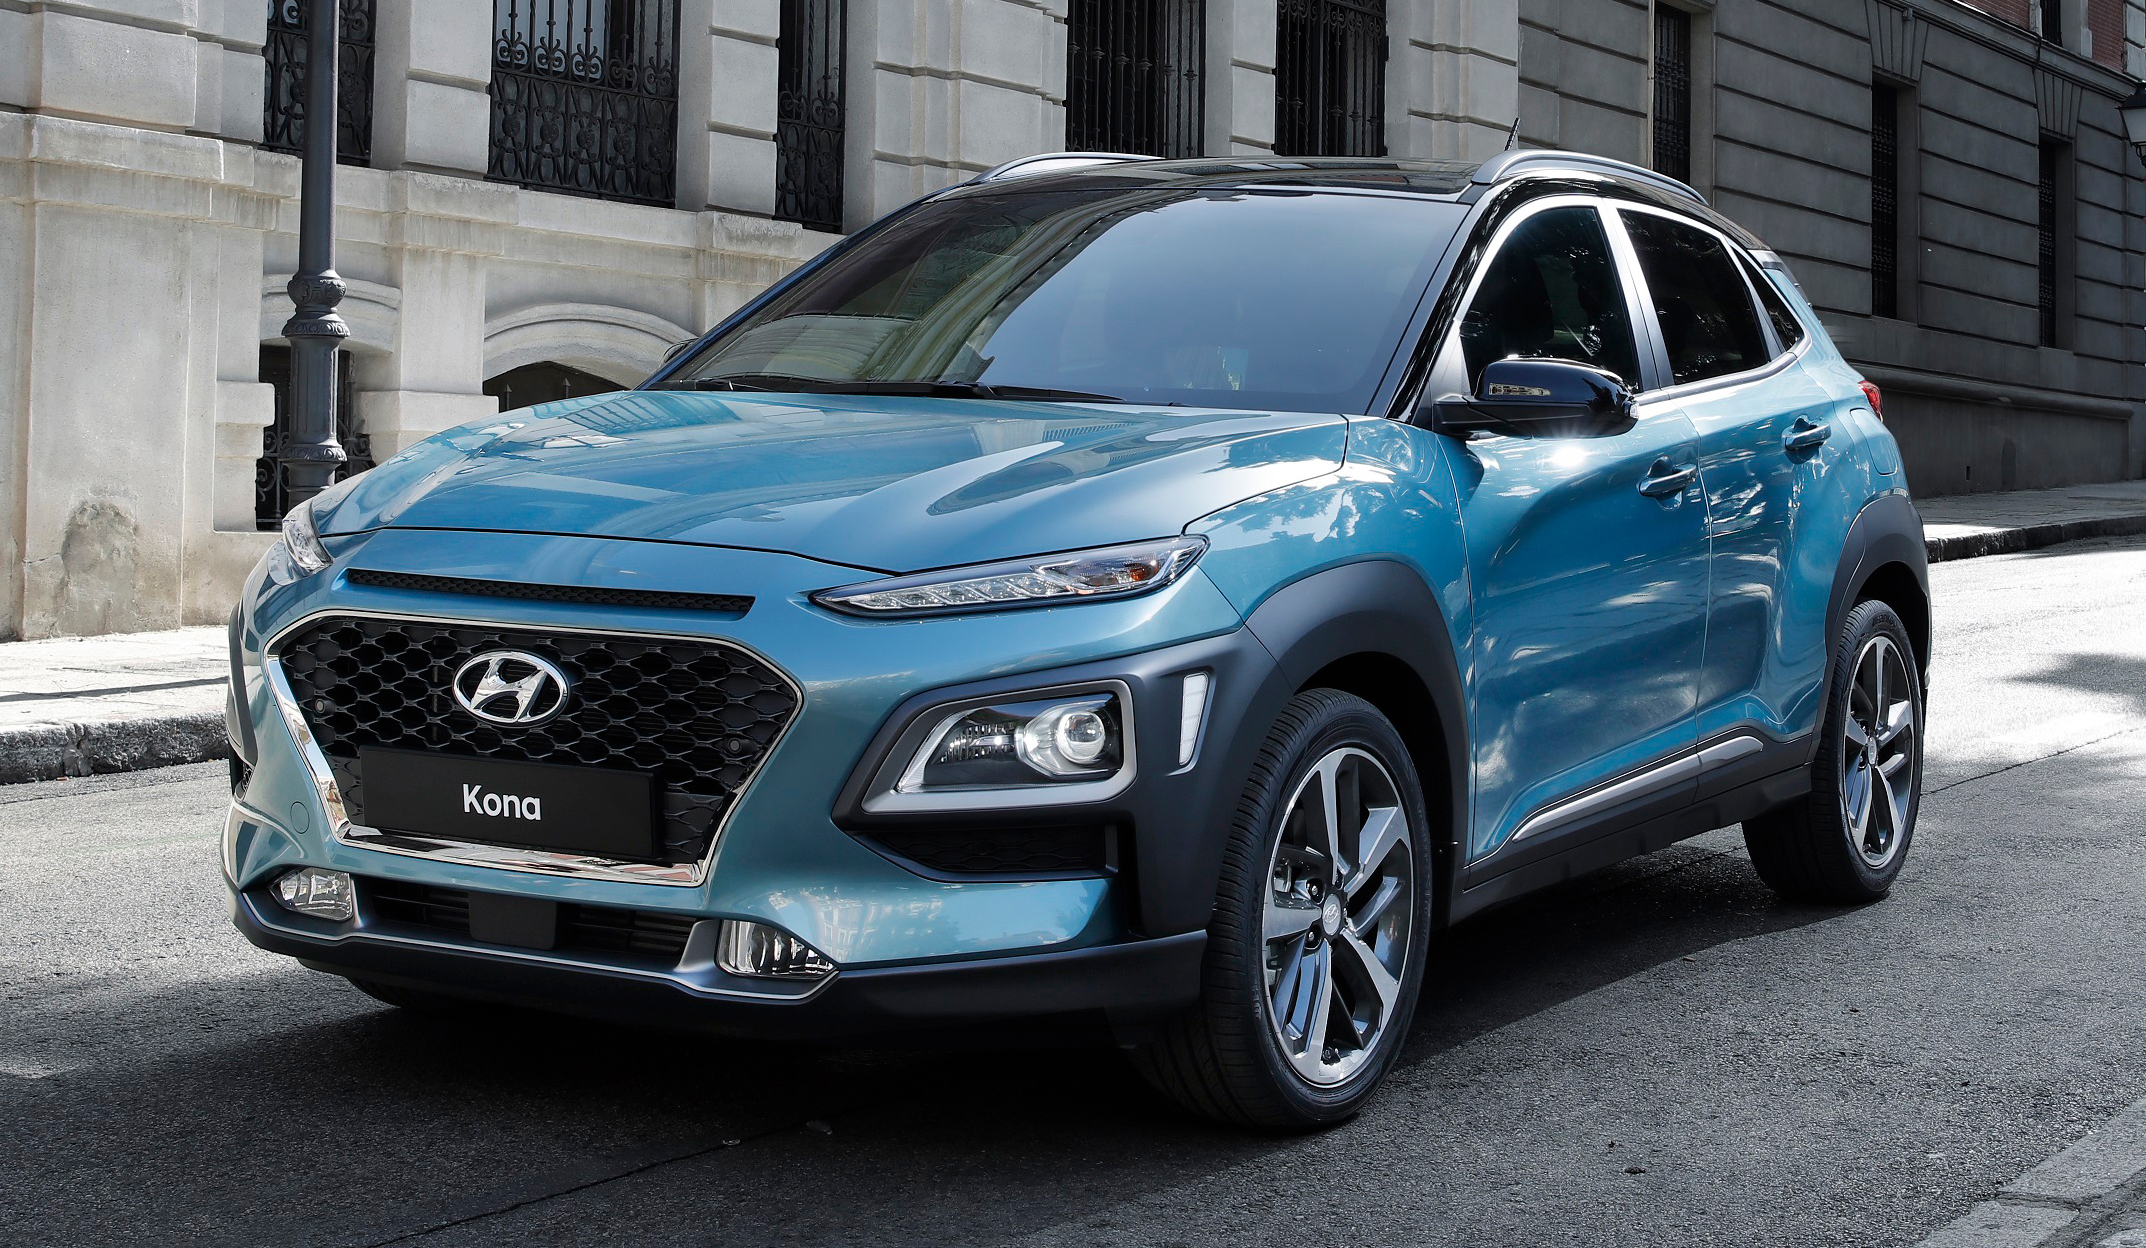 hyundai kona compact suv for millennials revealed. Black Bedroom Furniture Sets. Home Design Ideas